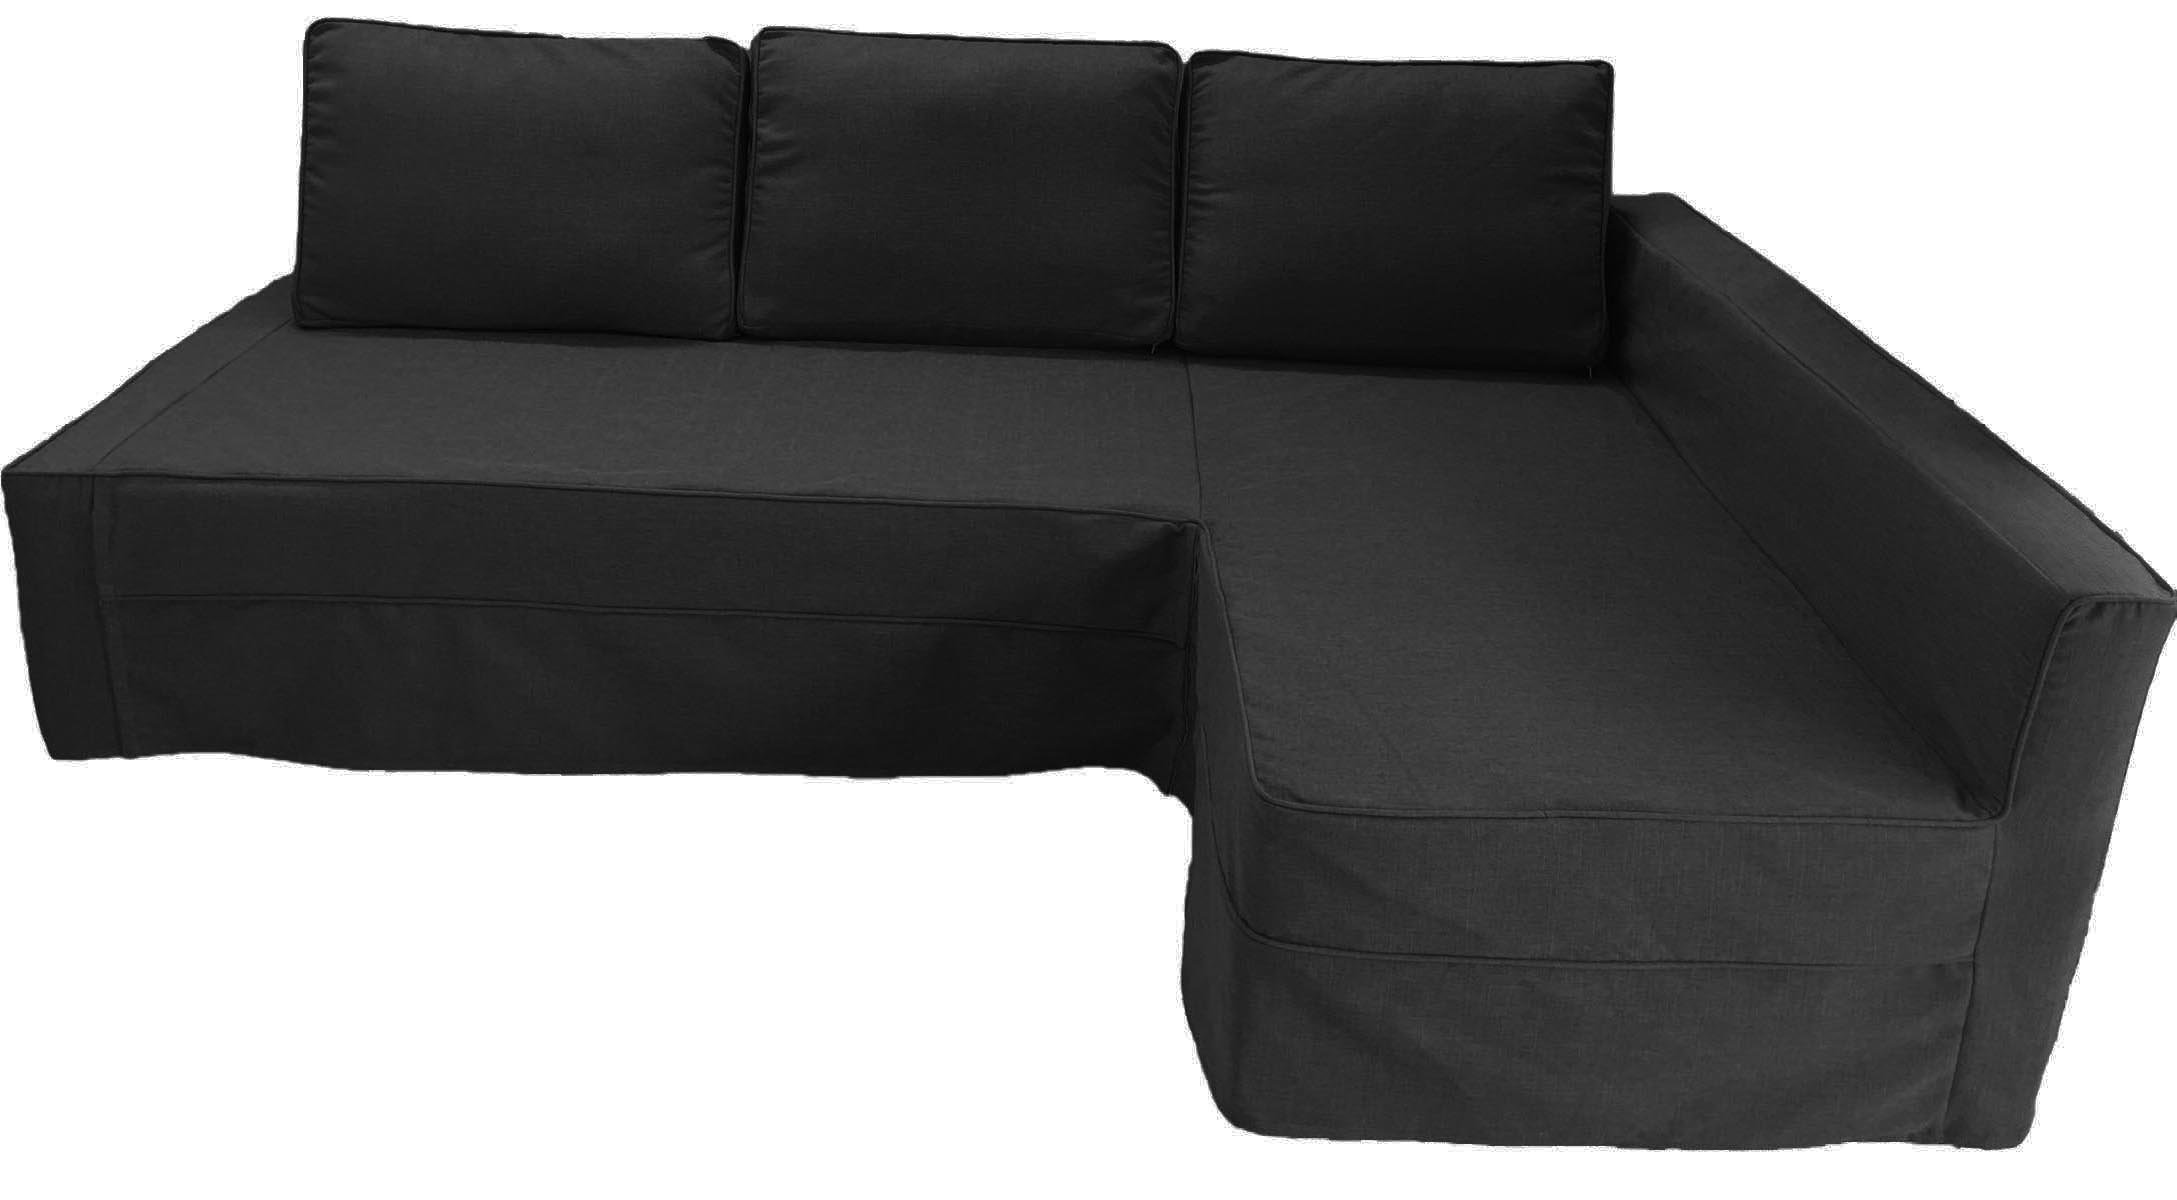 The Gray Ikea Friheten Slipcover is For Ikea Friheten Cover The